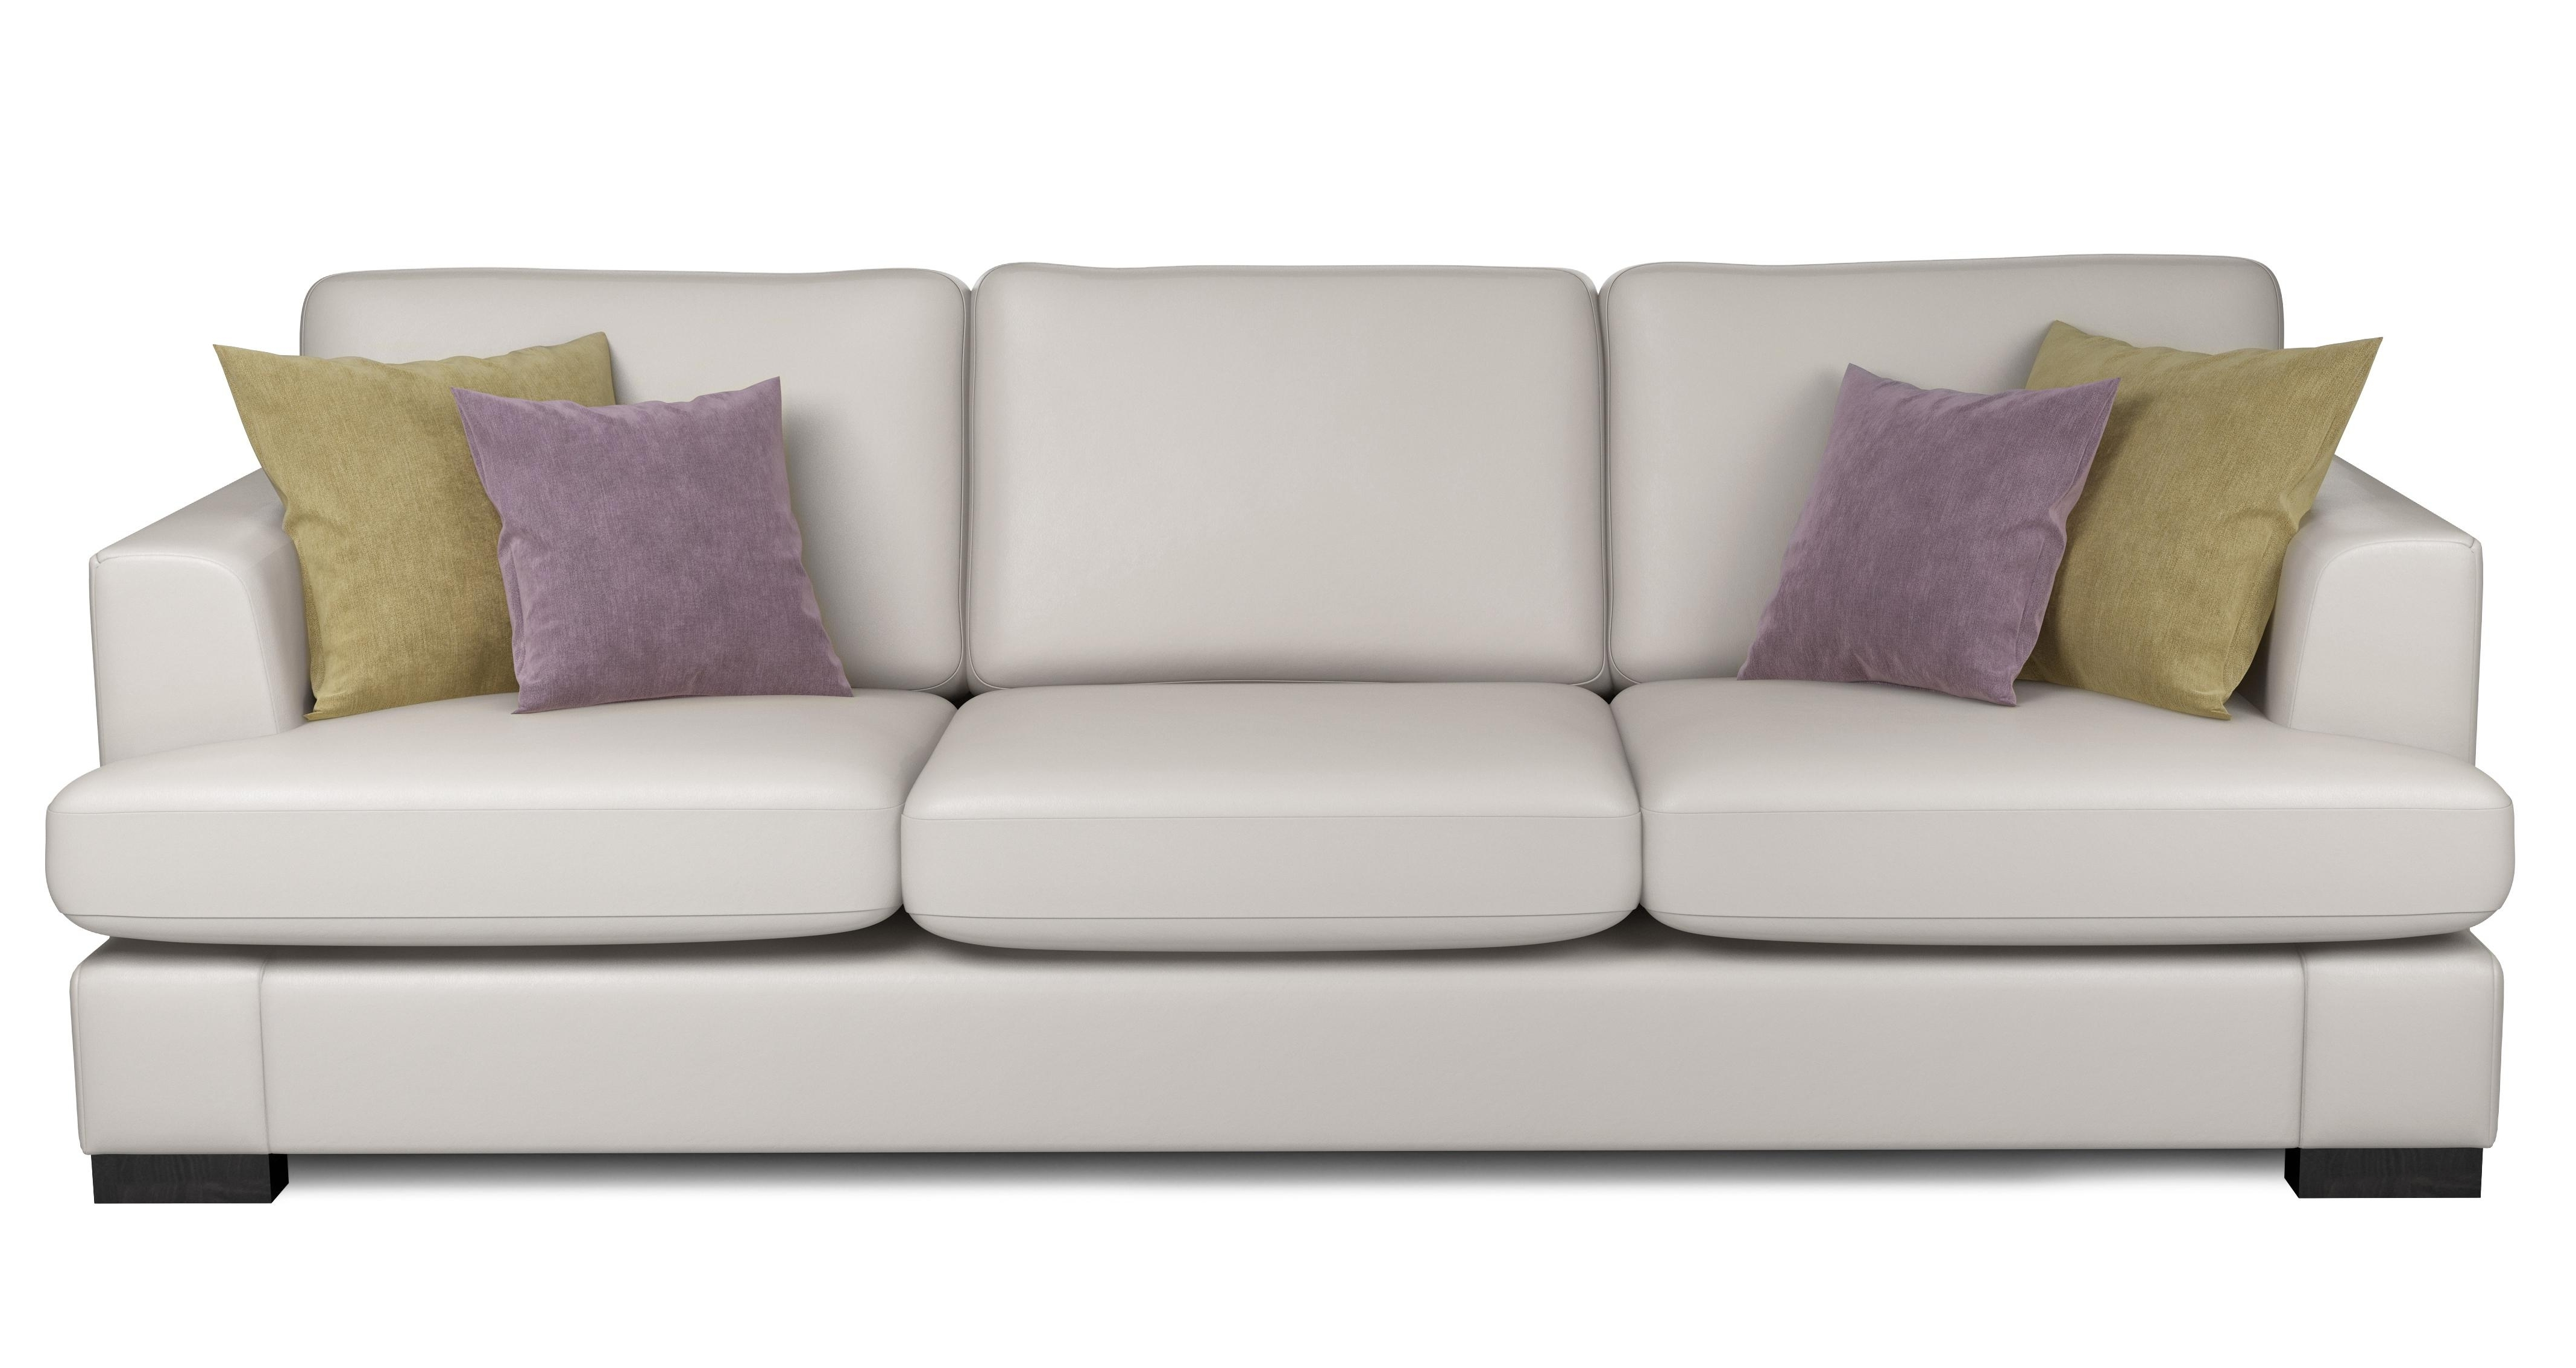 4 Seater Sofas With Regard To Latest 4 Seater Leather Sofa – Home And Textiles (View 4 of 15)